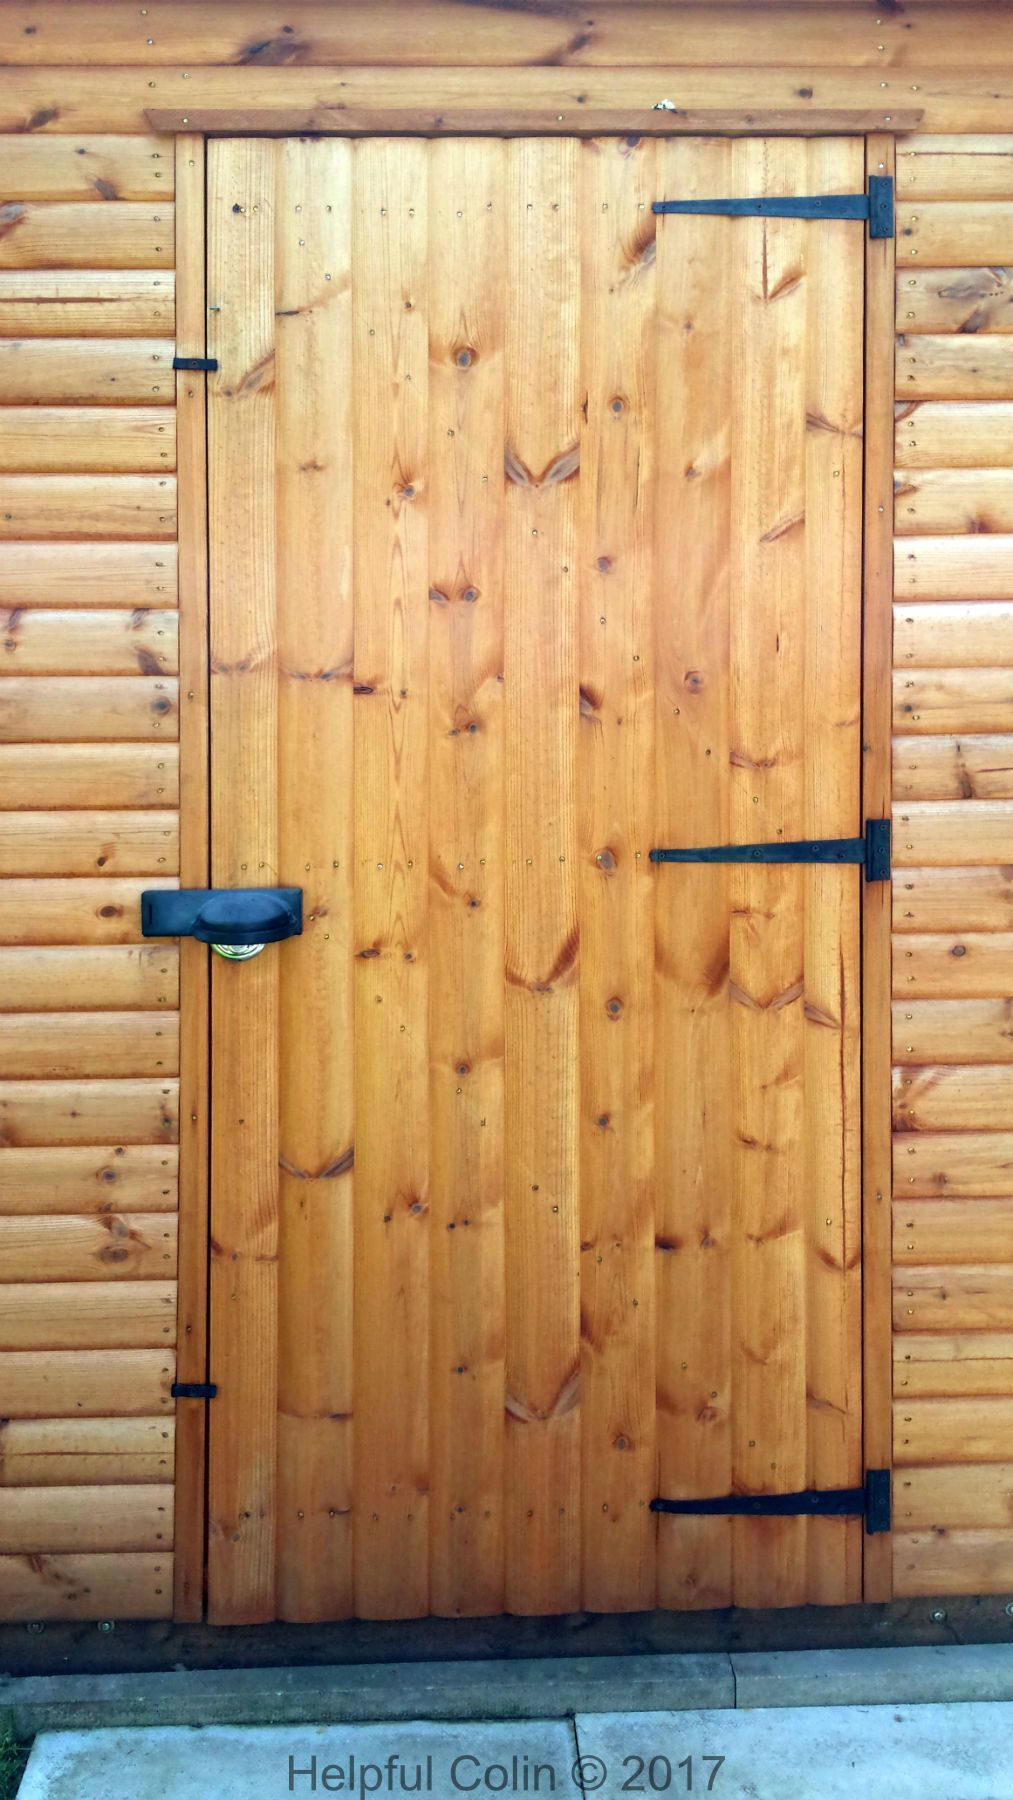 This Is My Shed Door Which I Have Made Secure With A